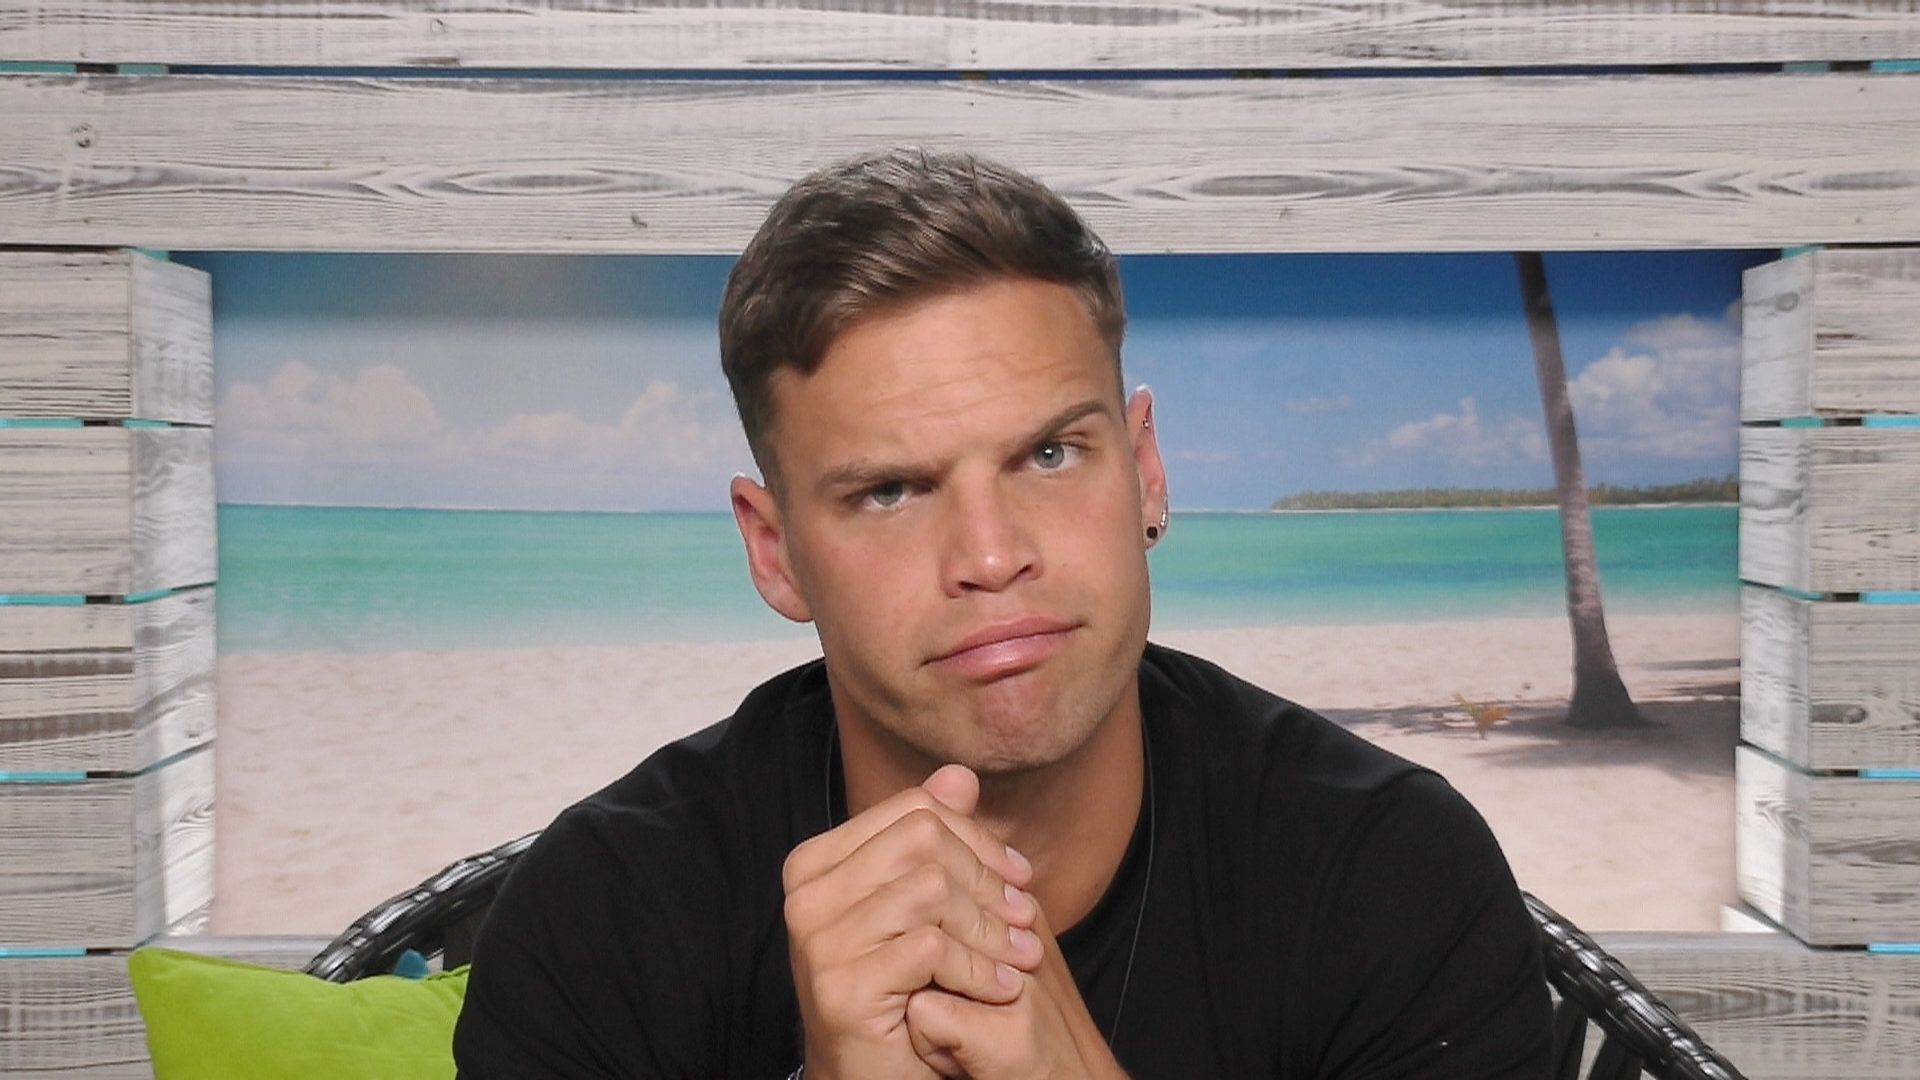 Dom is currently involved in a 'Love Island' love